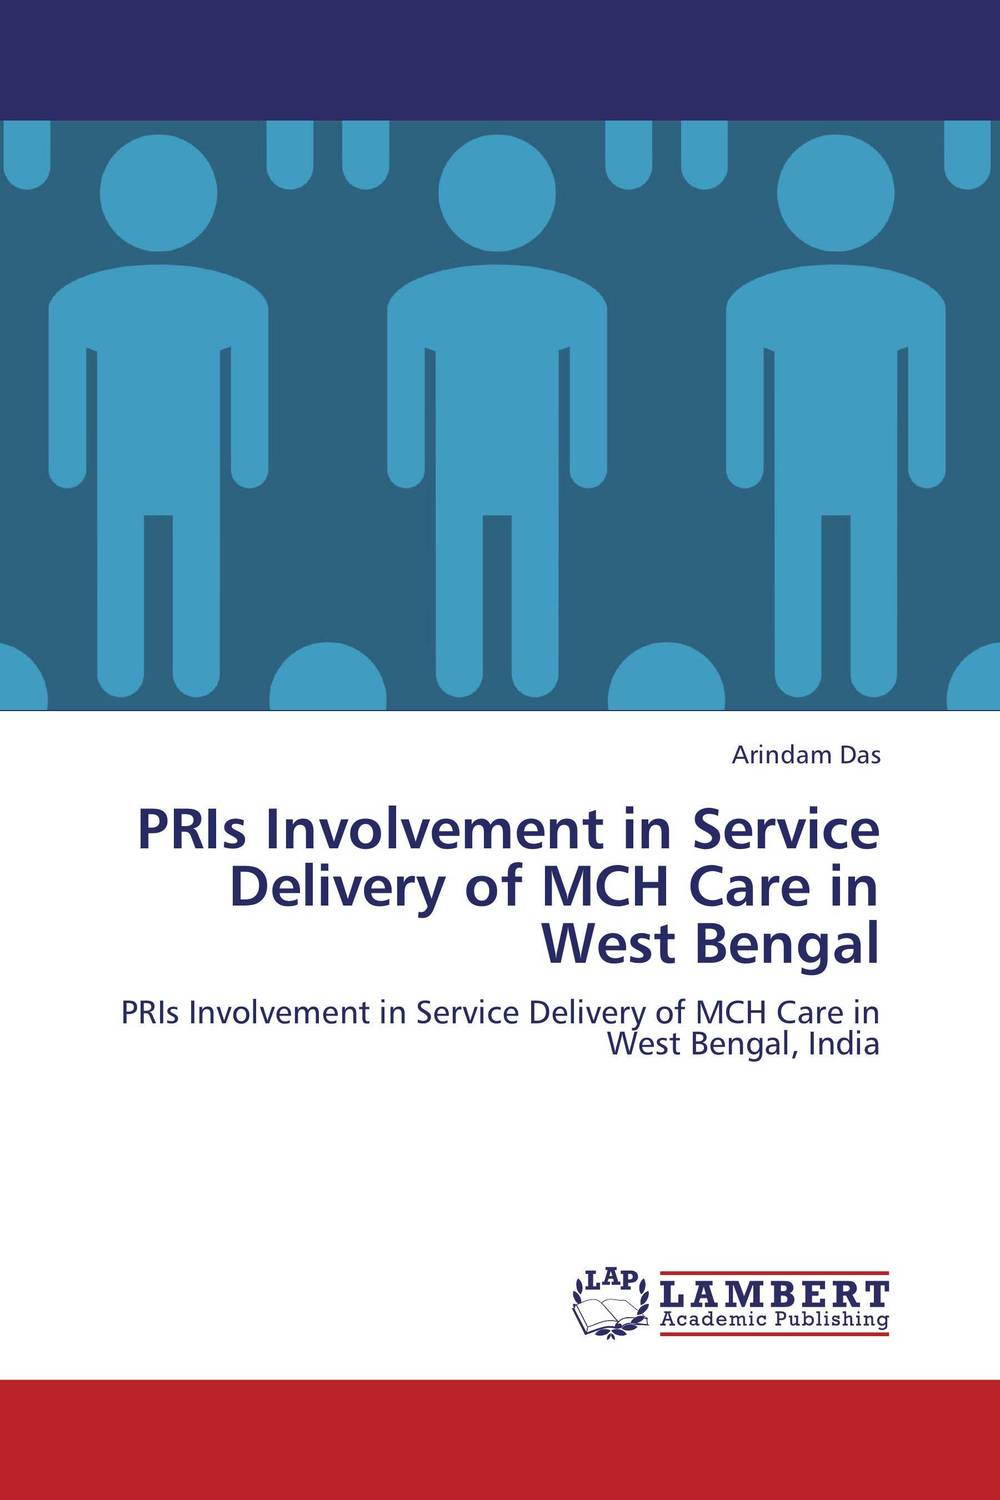 PRIs Involvement in Service Delivery of MCH Care in West Bengal maureen a adoyo health service delivery in kenya